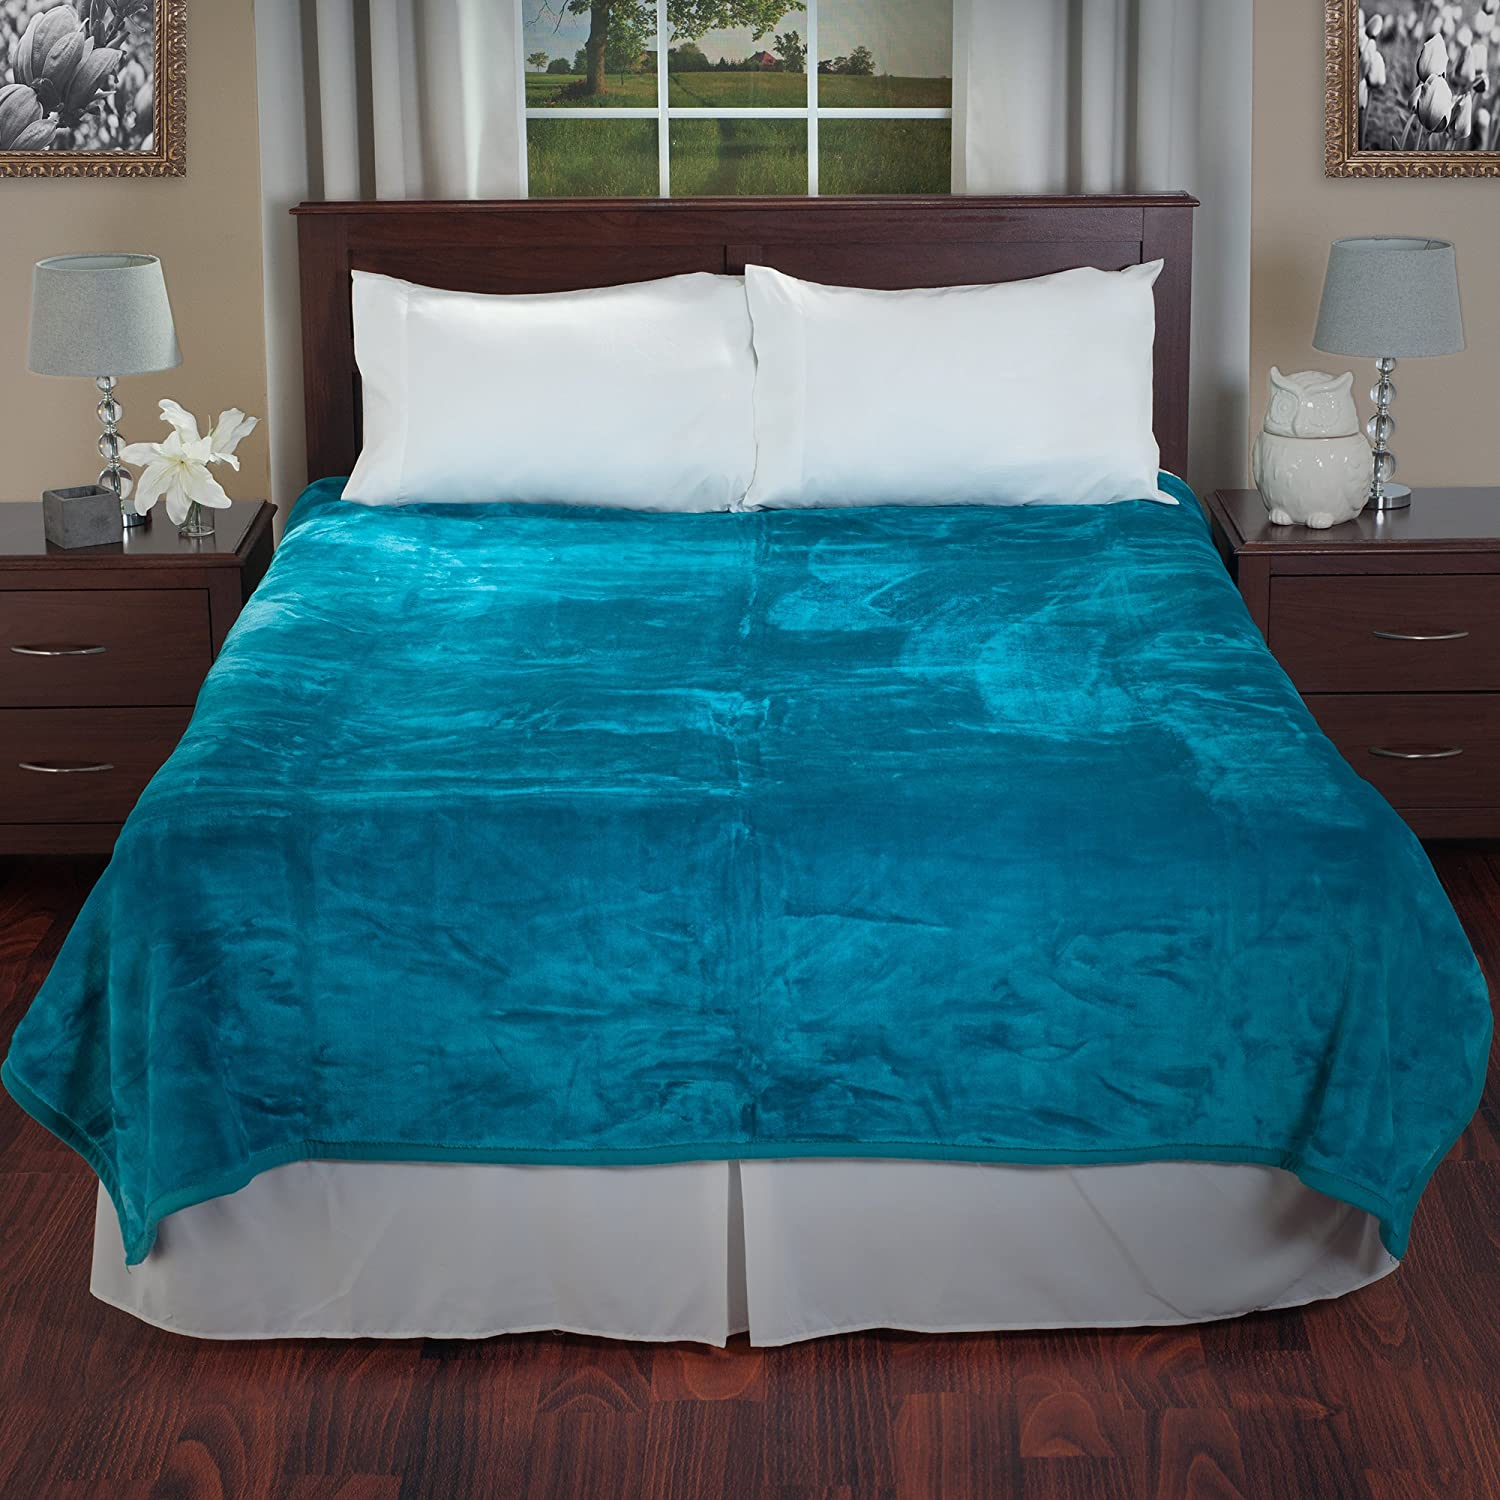 Lavish Home Solid Soft Heavy Thick Plush Mink Blanket 8 Pound - Aqua